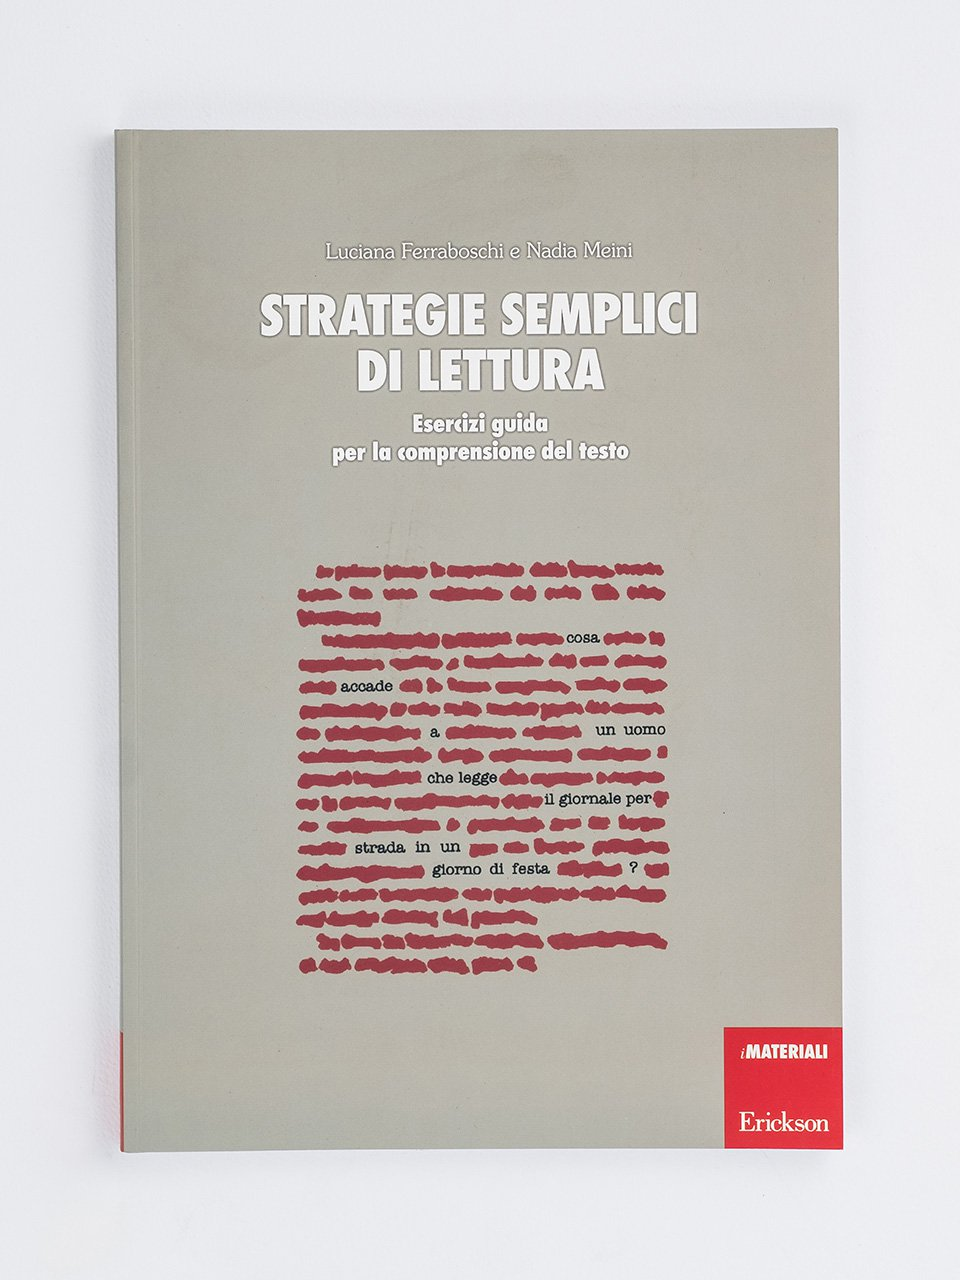 Strategie semplici di lettura - Strategie di lettura metacognitiva - Libri - Erickson